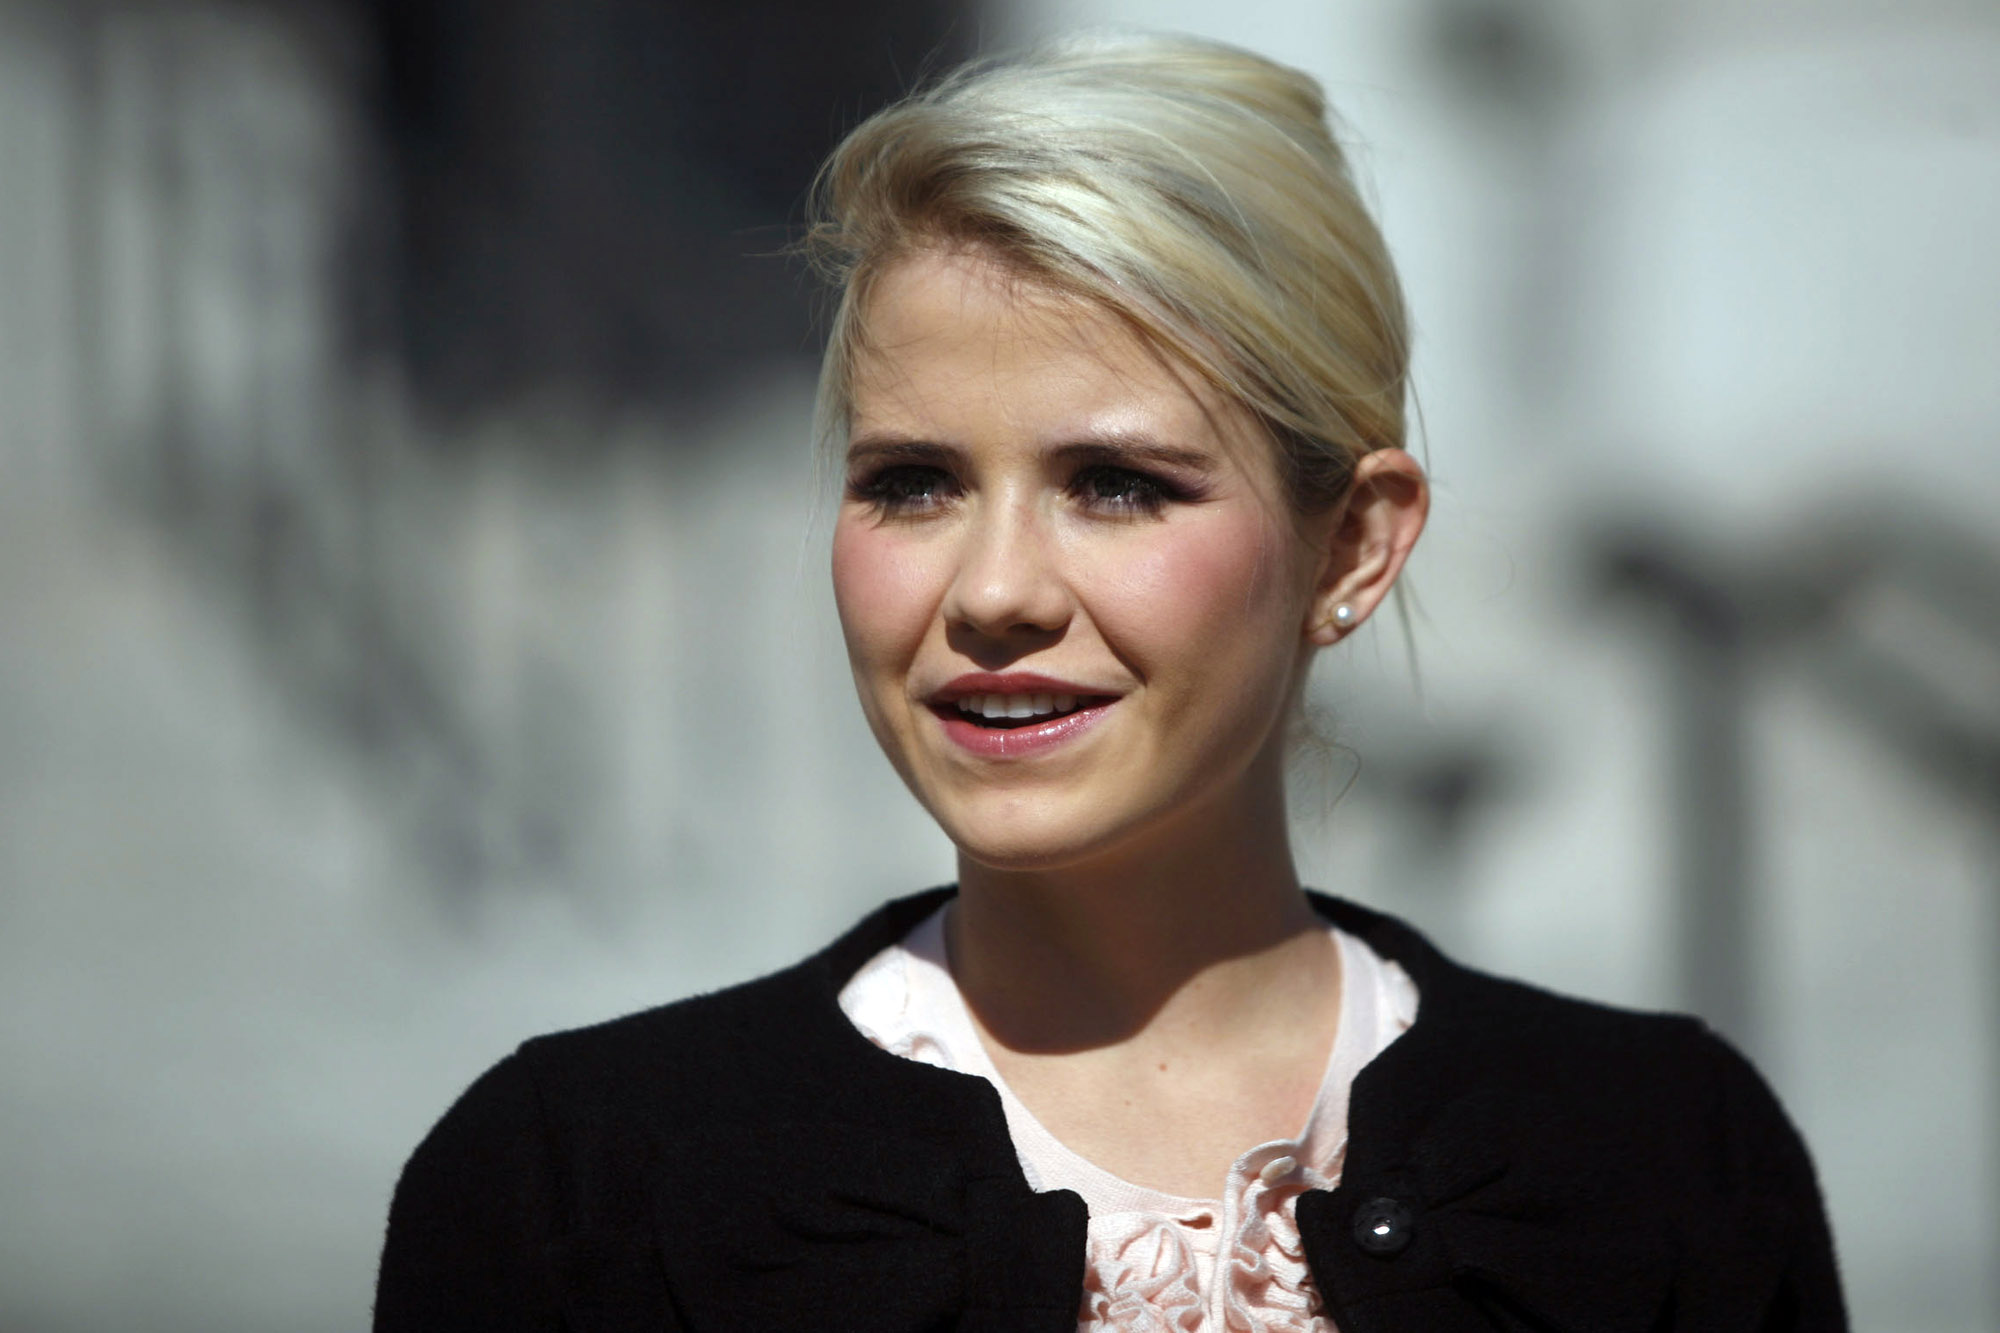 Elizabeth Smart Photo: AP